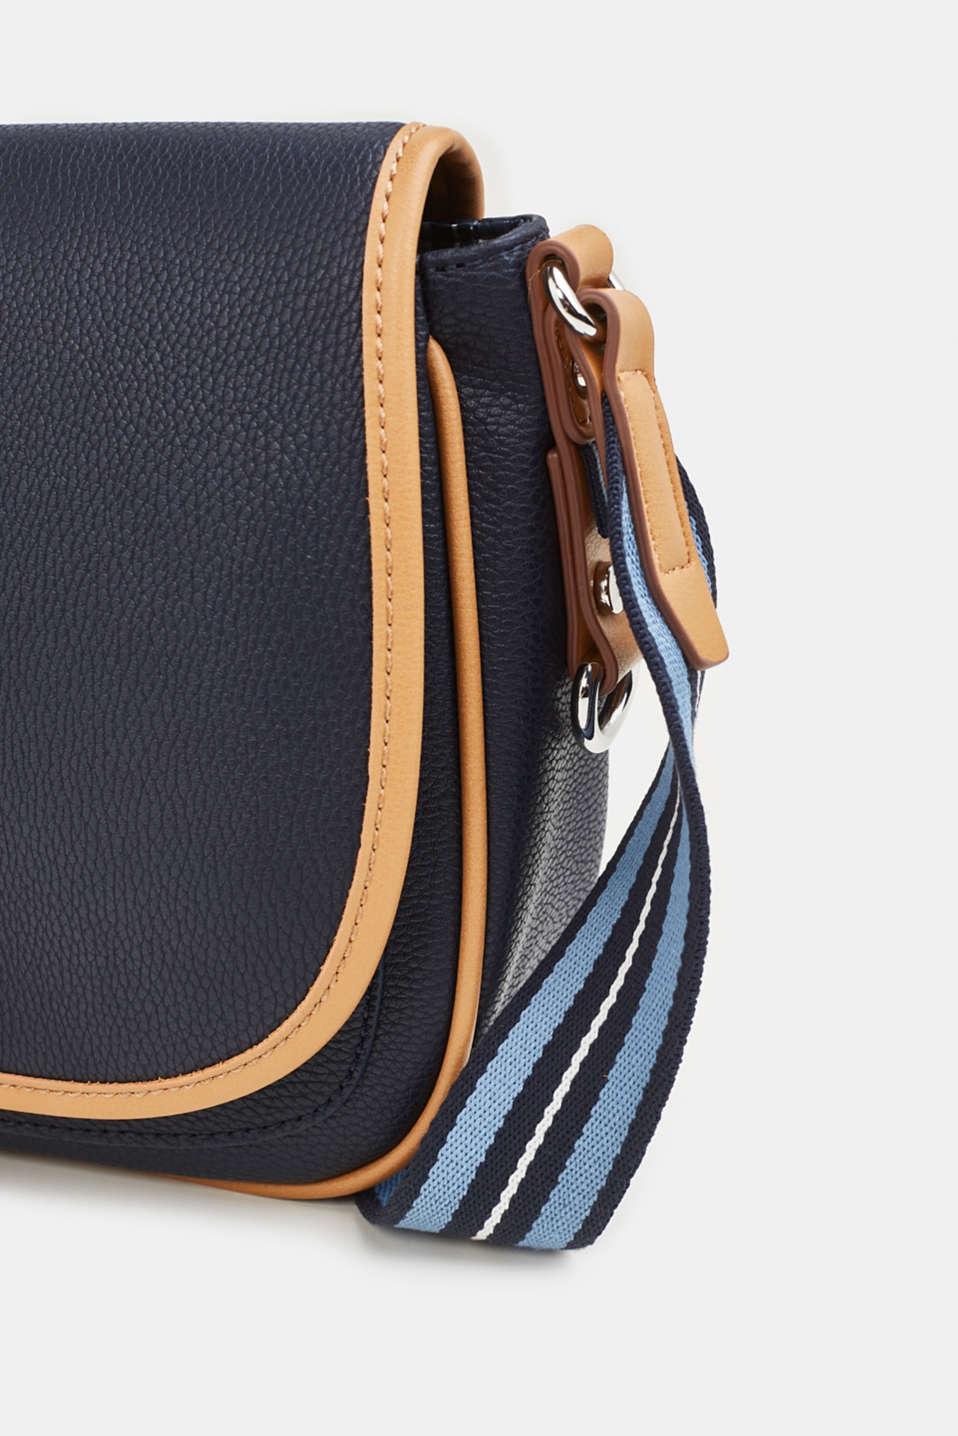 Susie T. shoulder bag, NAVY, detail image number 5